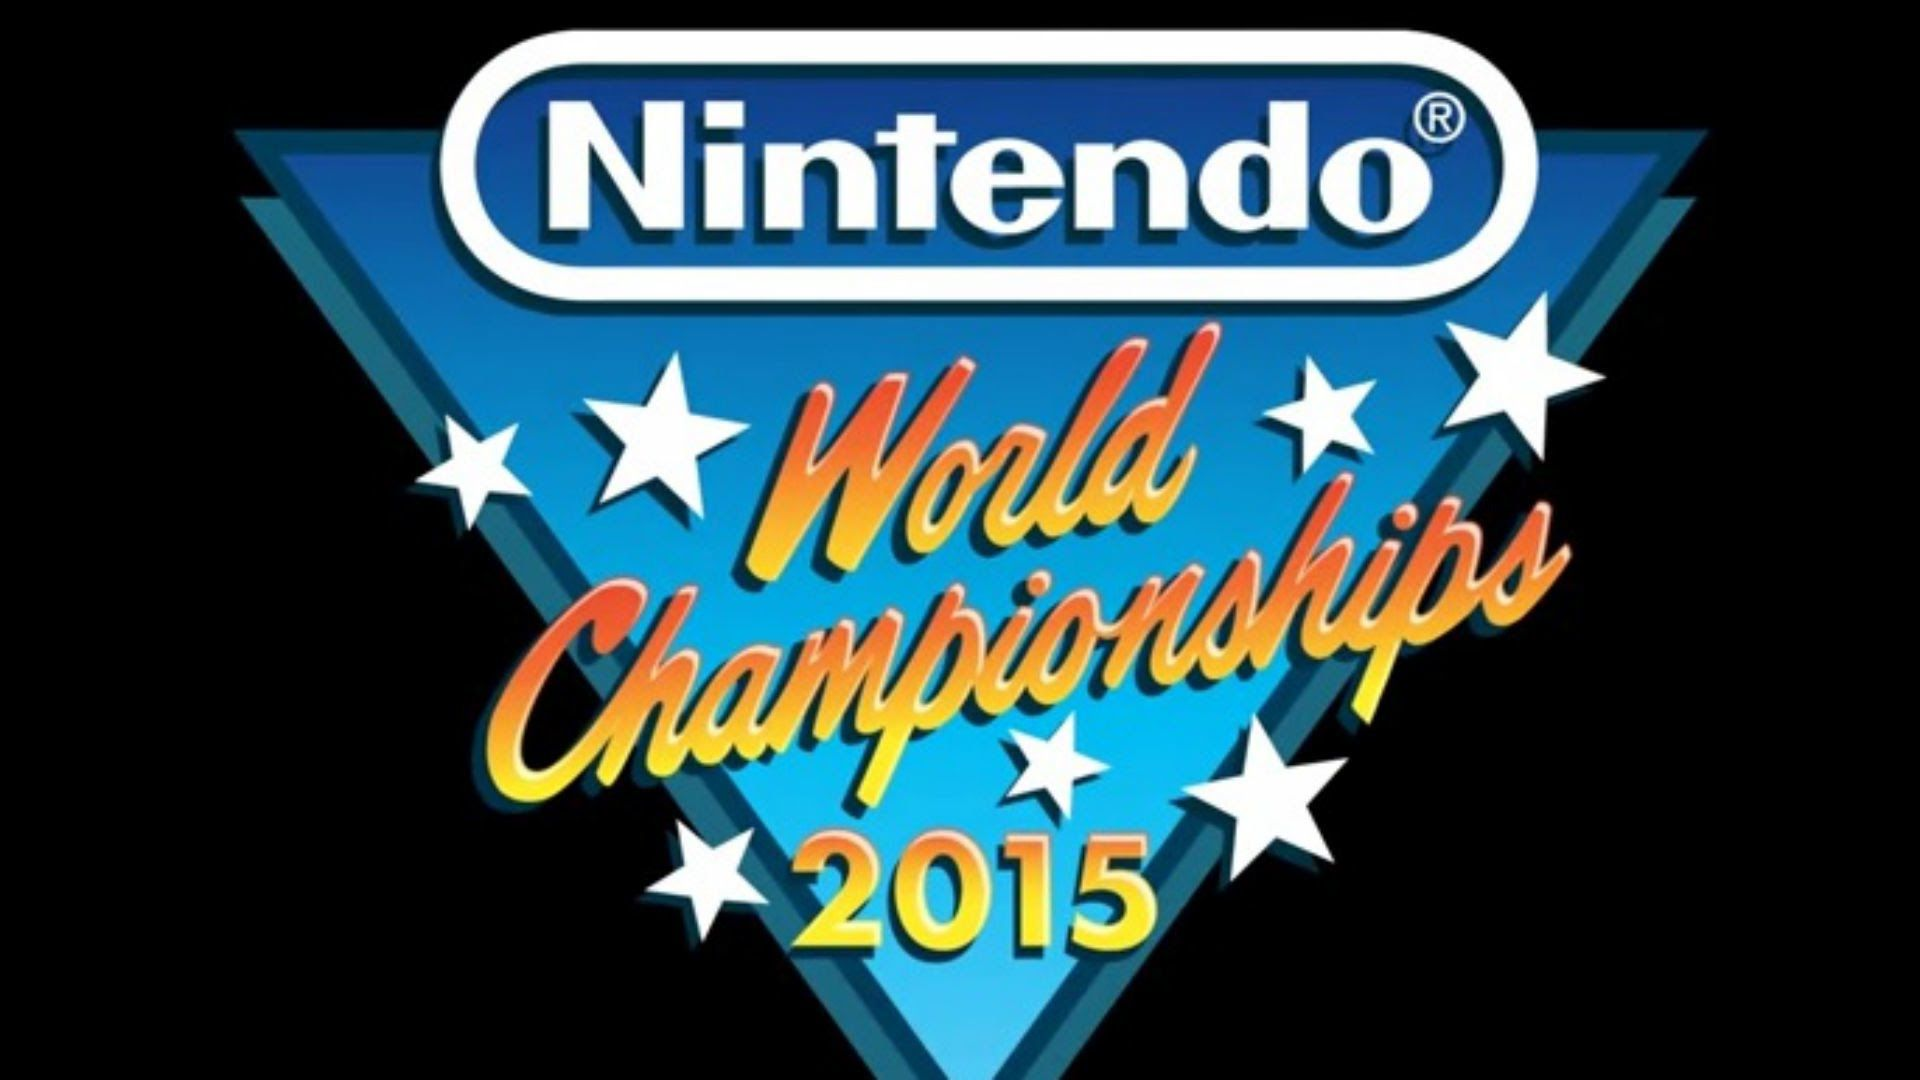 The Gamer's Code Episode 31: Nintendo World Championships